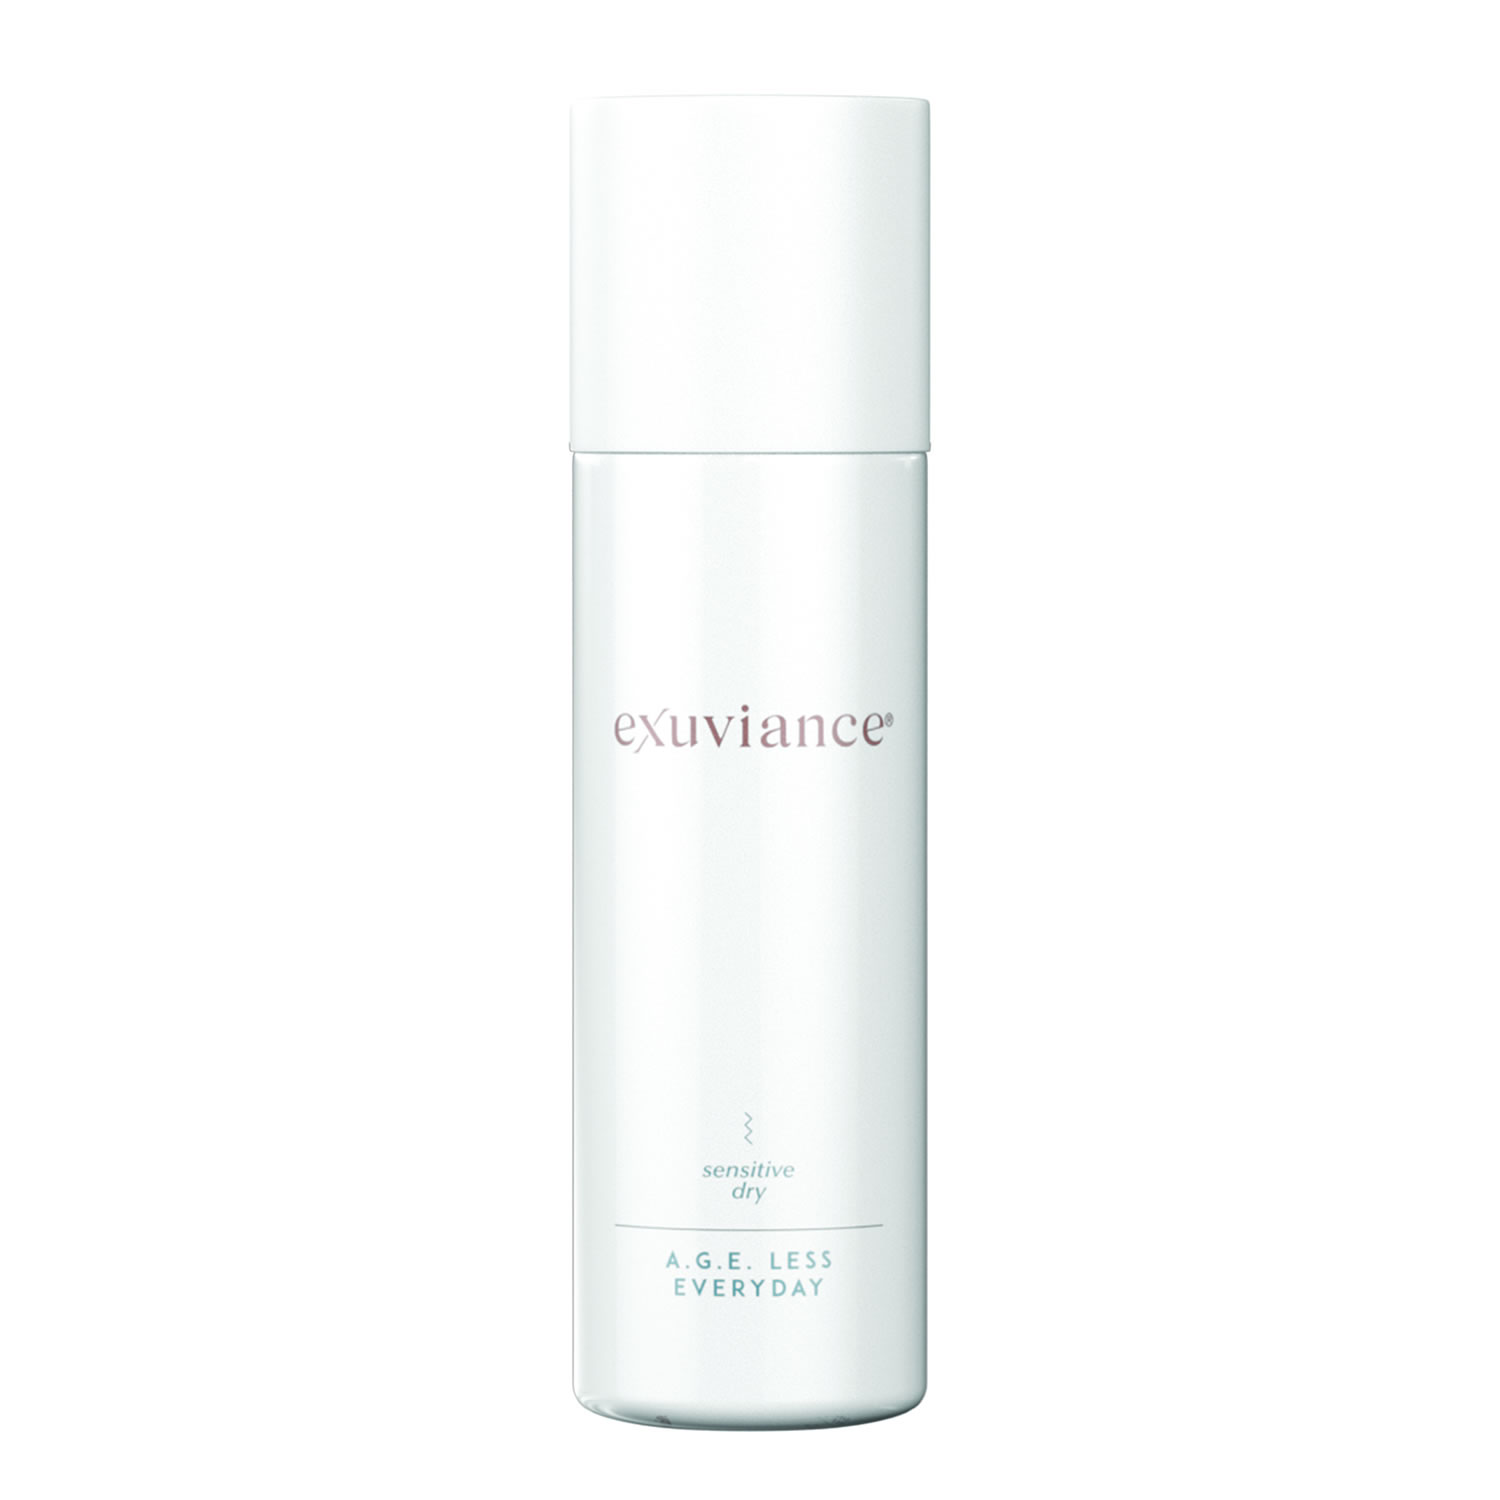 Exuviance A.G.E. LESS EVERYDAY (formerly Age Less Everyday) (50 ml / 1.7 fl oz)